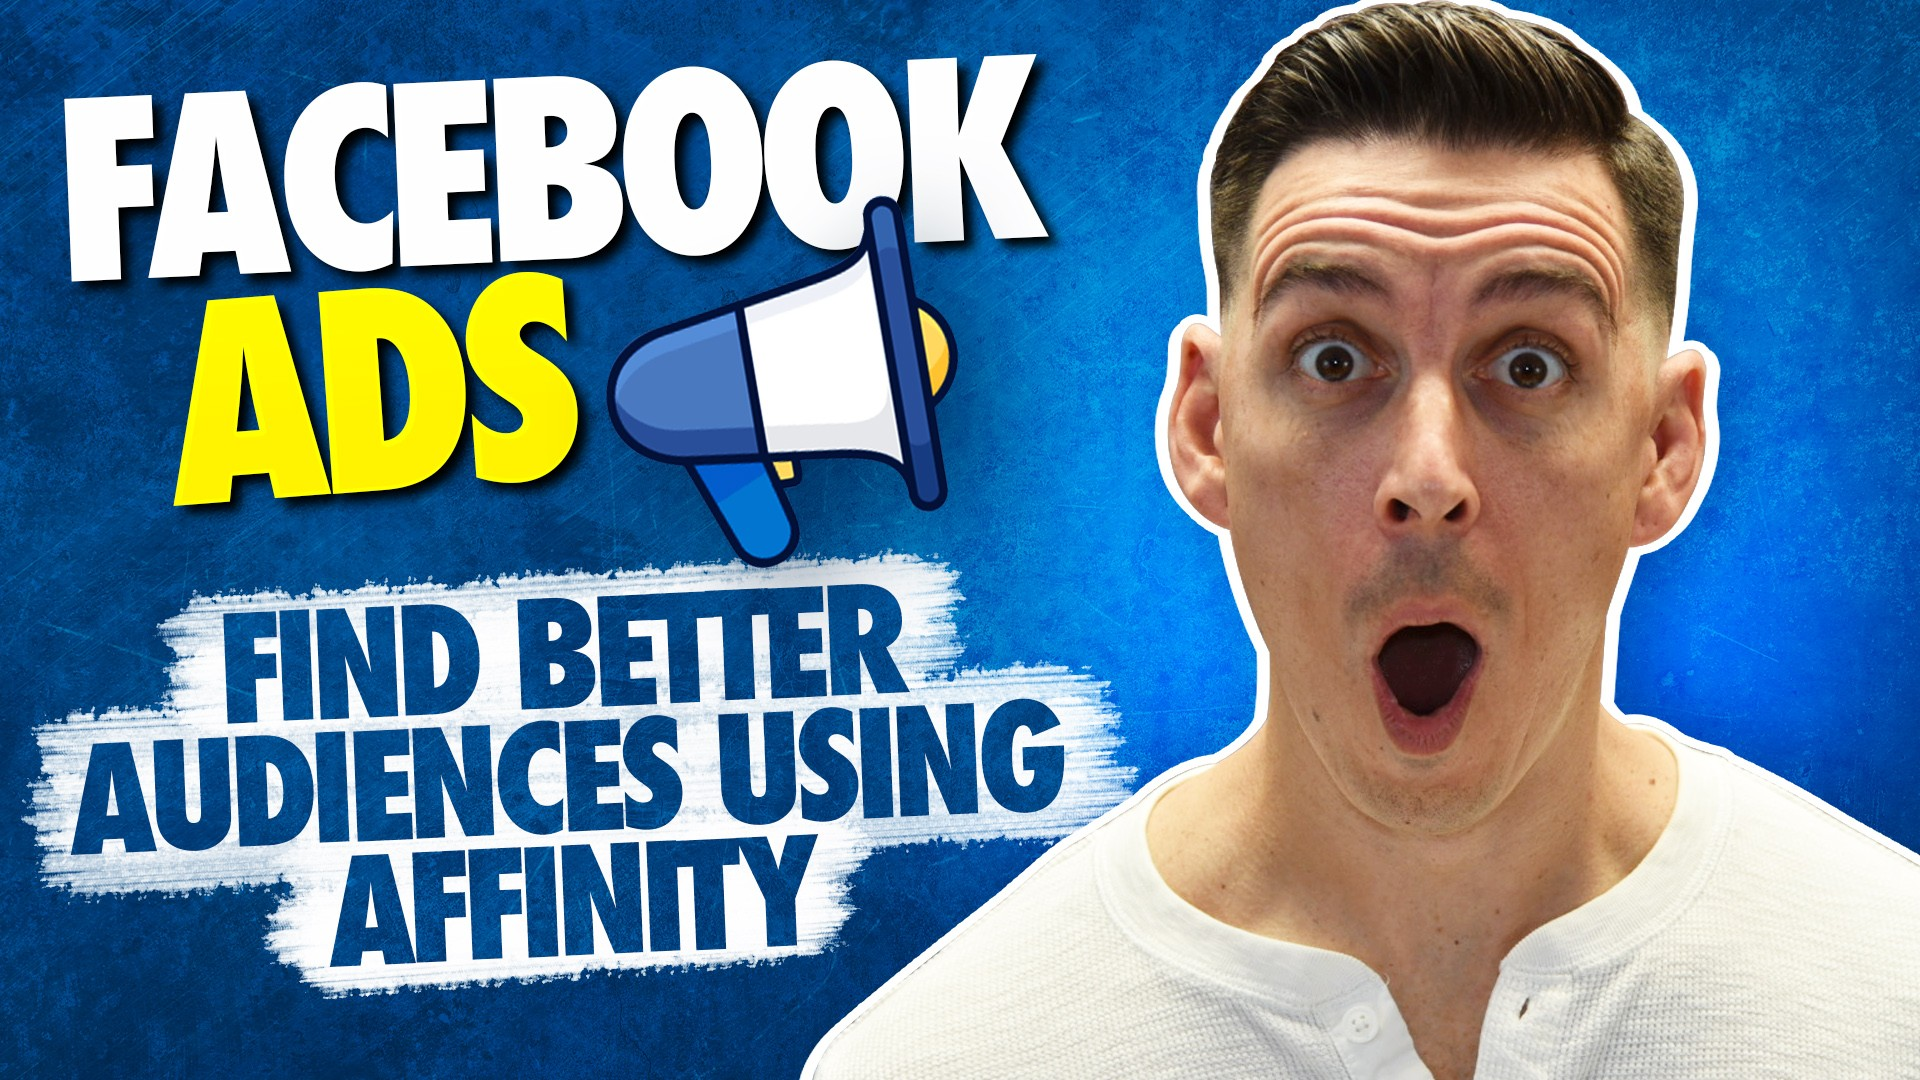 Finding better audiences to target on Facebook using the affinity score